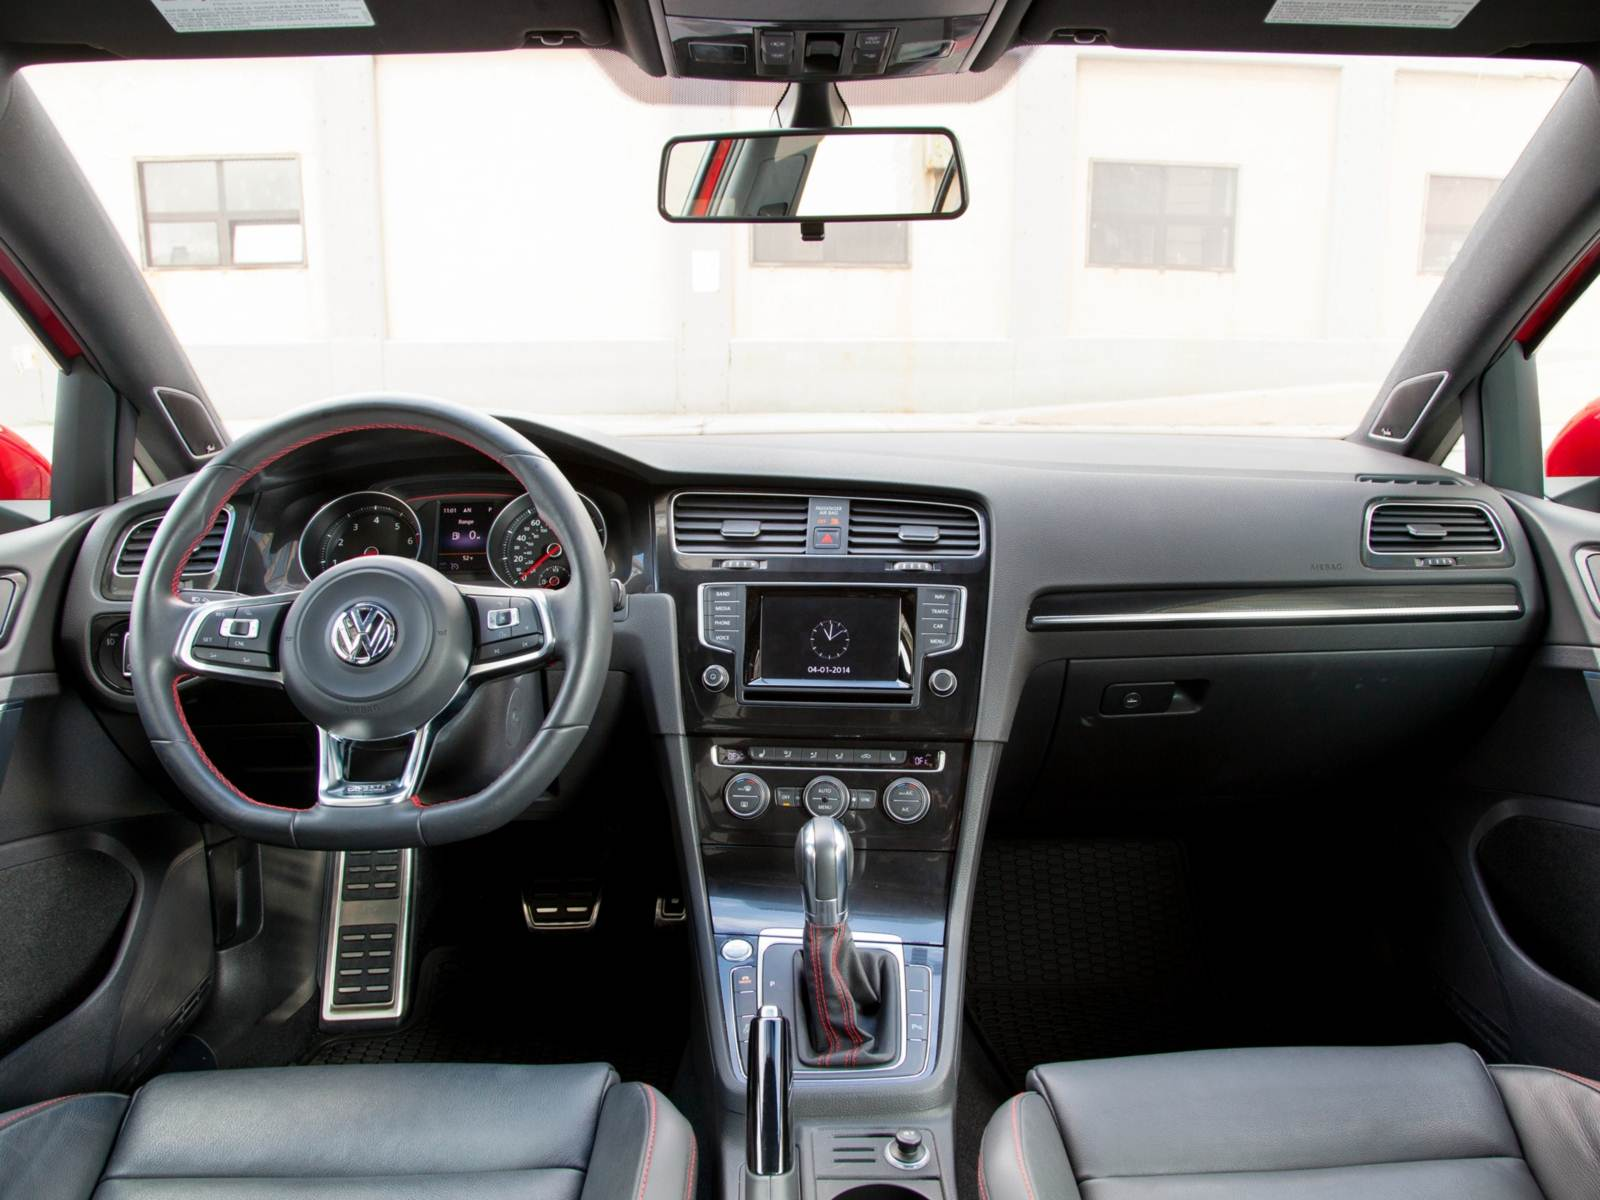 VW Golf GTI - interior